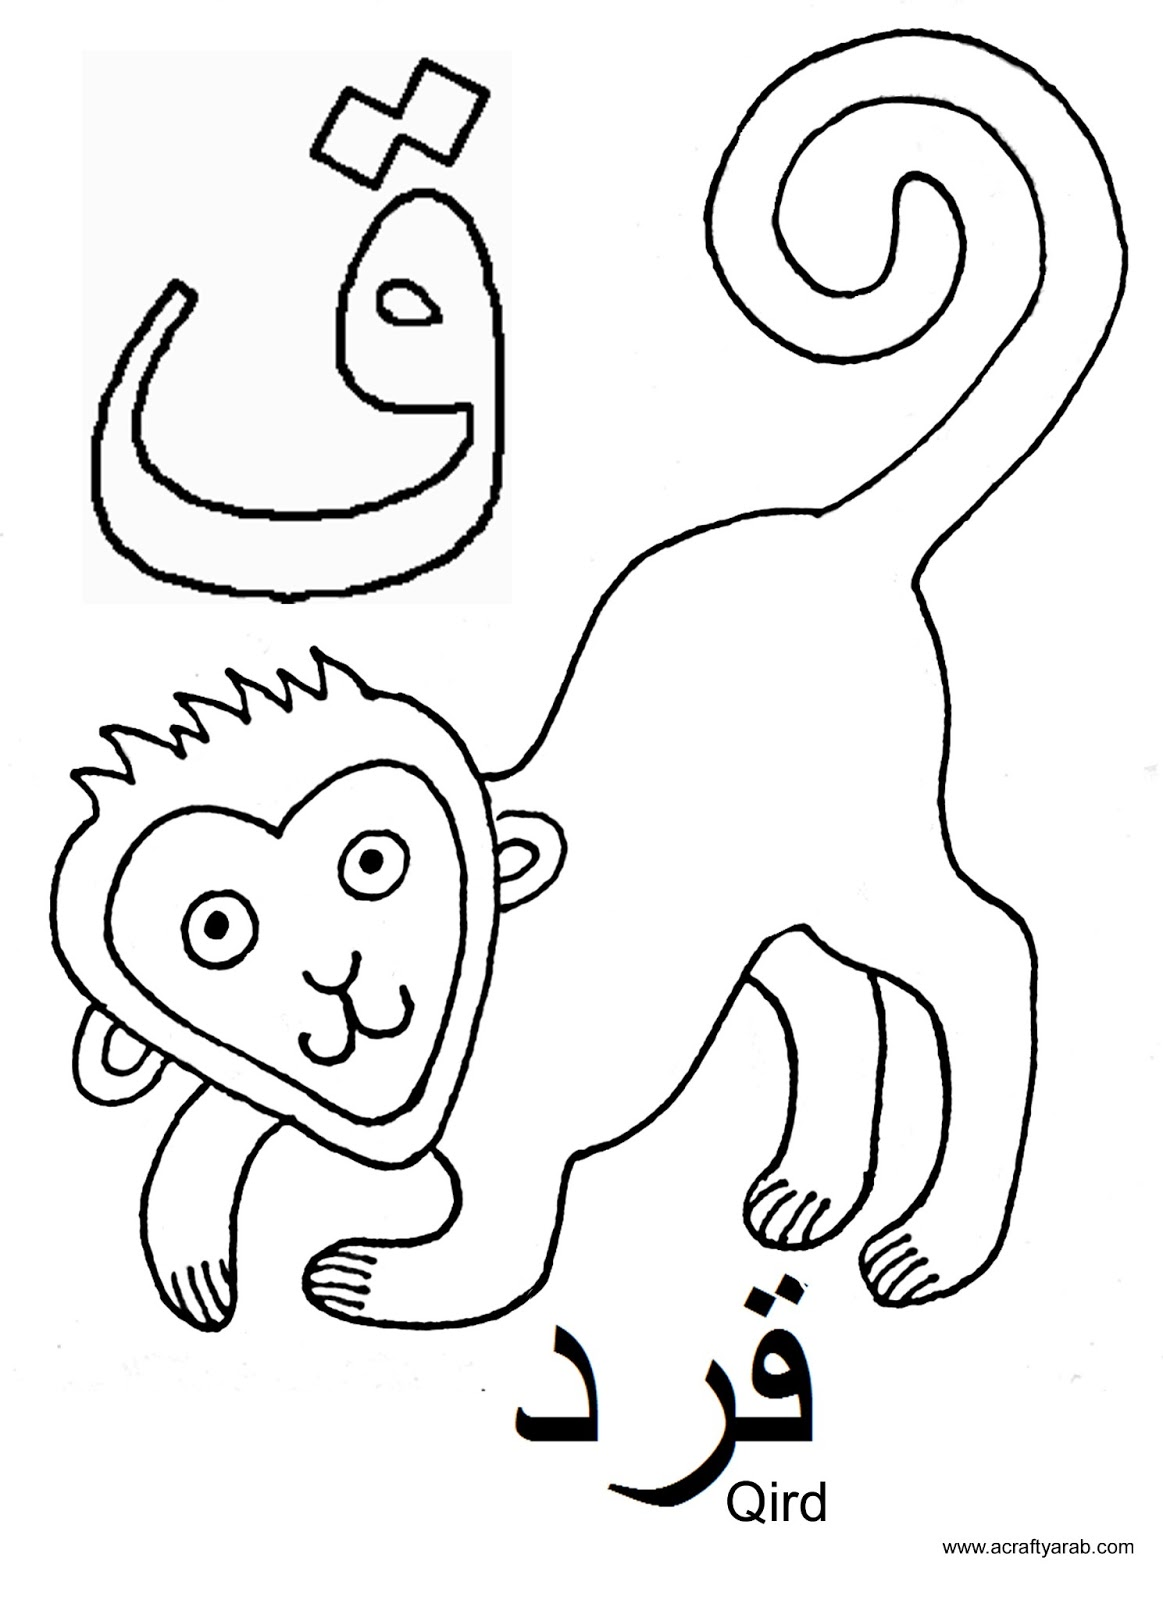 a crafty arab arabic alphabet coloring pages qaf is for qird. Black Bedroom Furniture Sets. Home Design Ideas